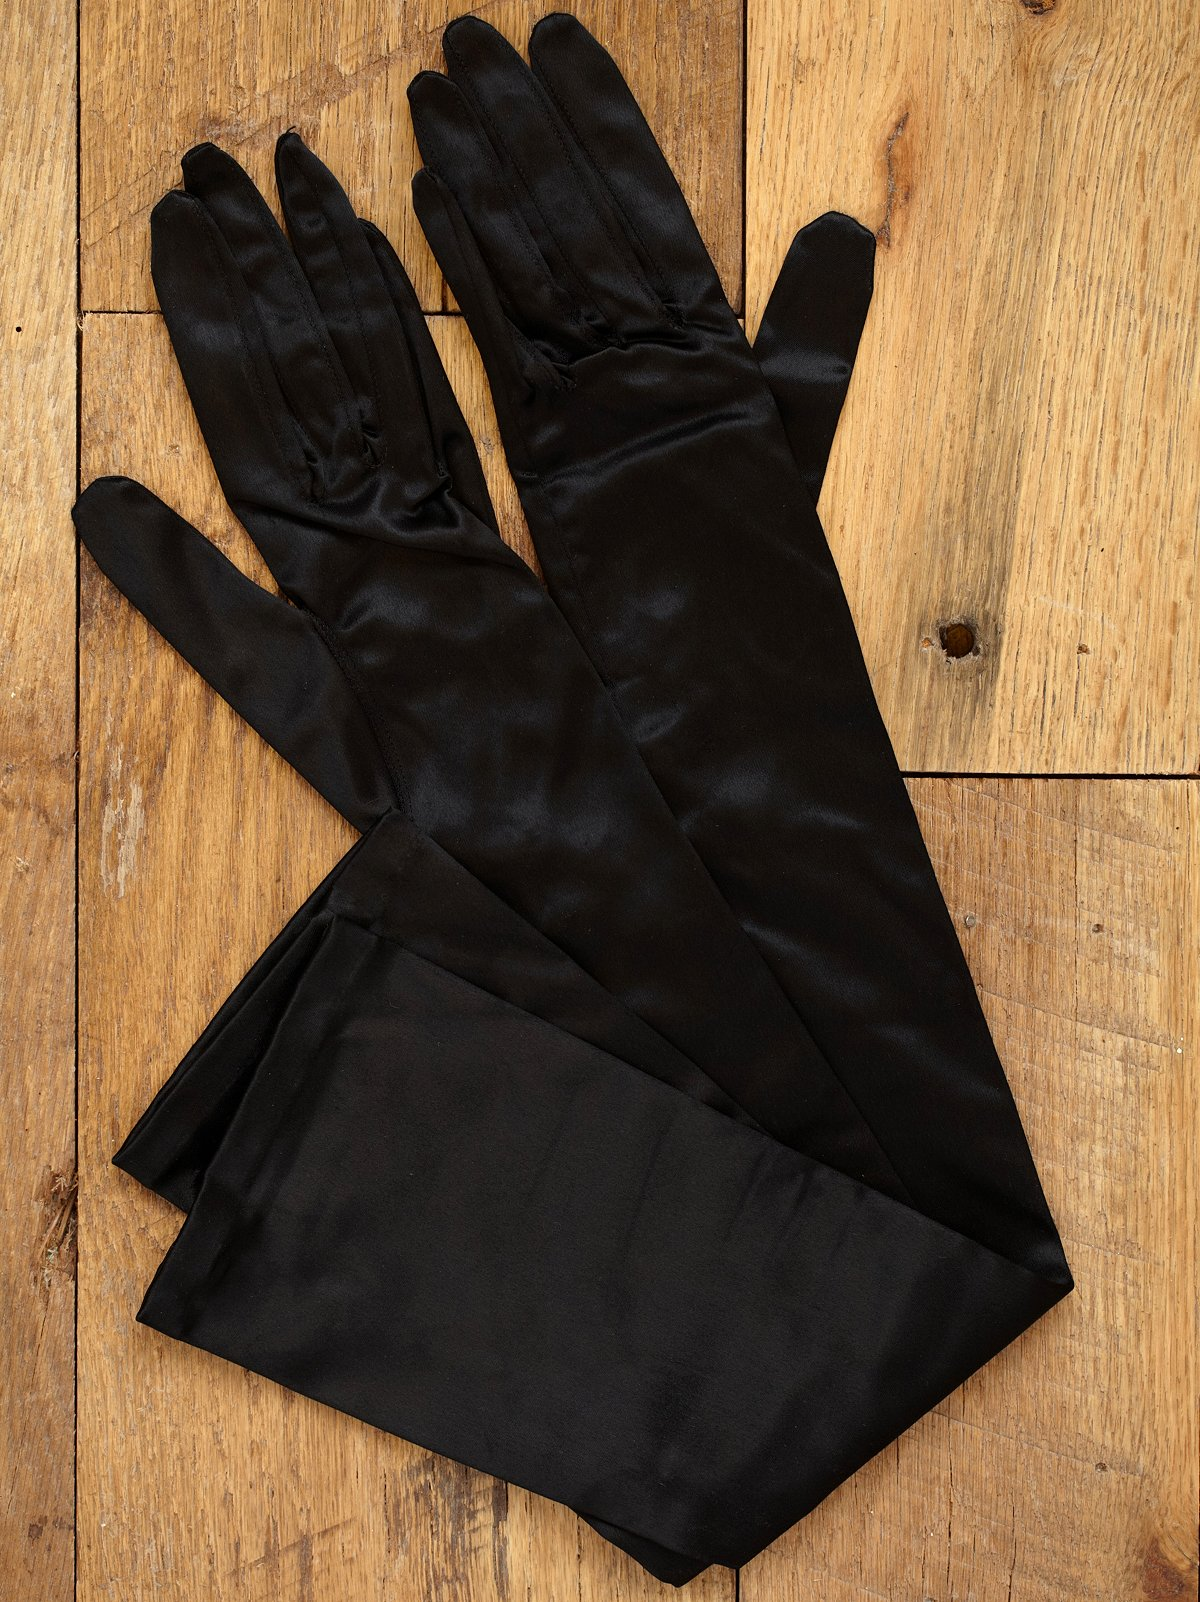 Vintage 1960s Stretch Satin Gloves